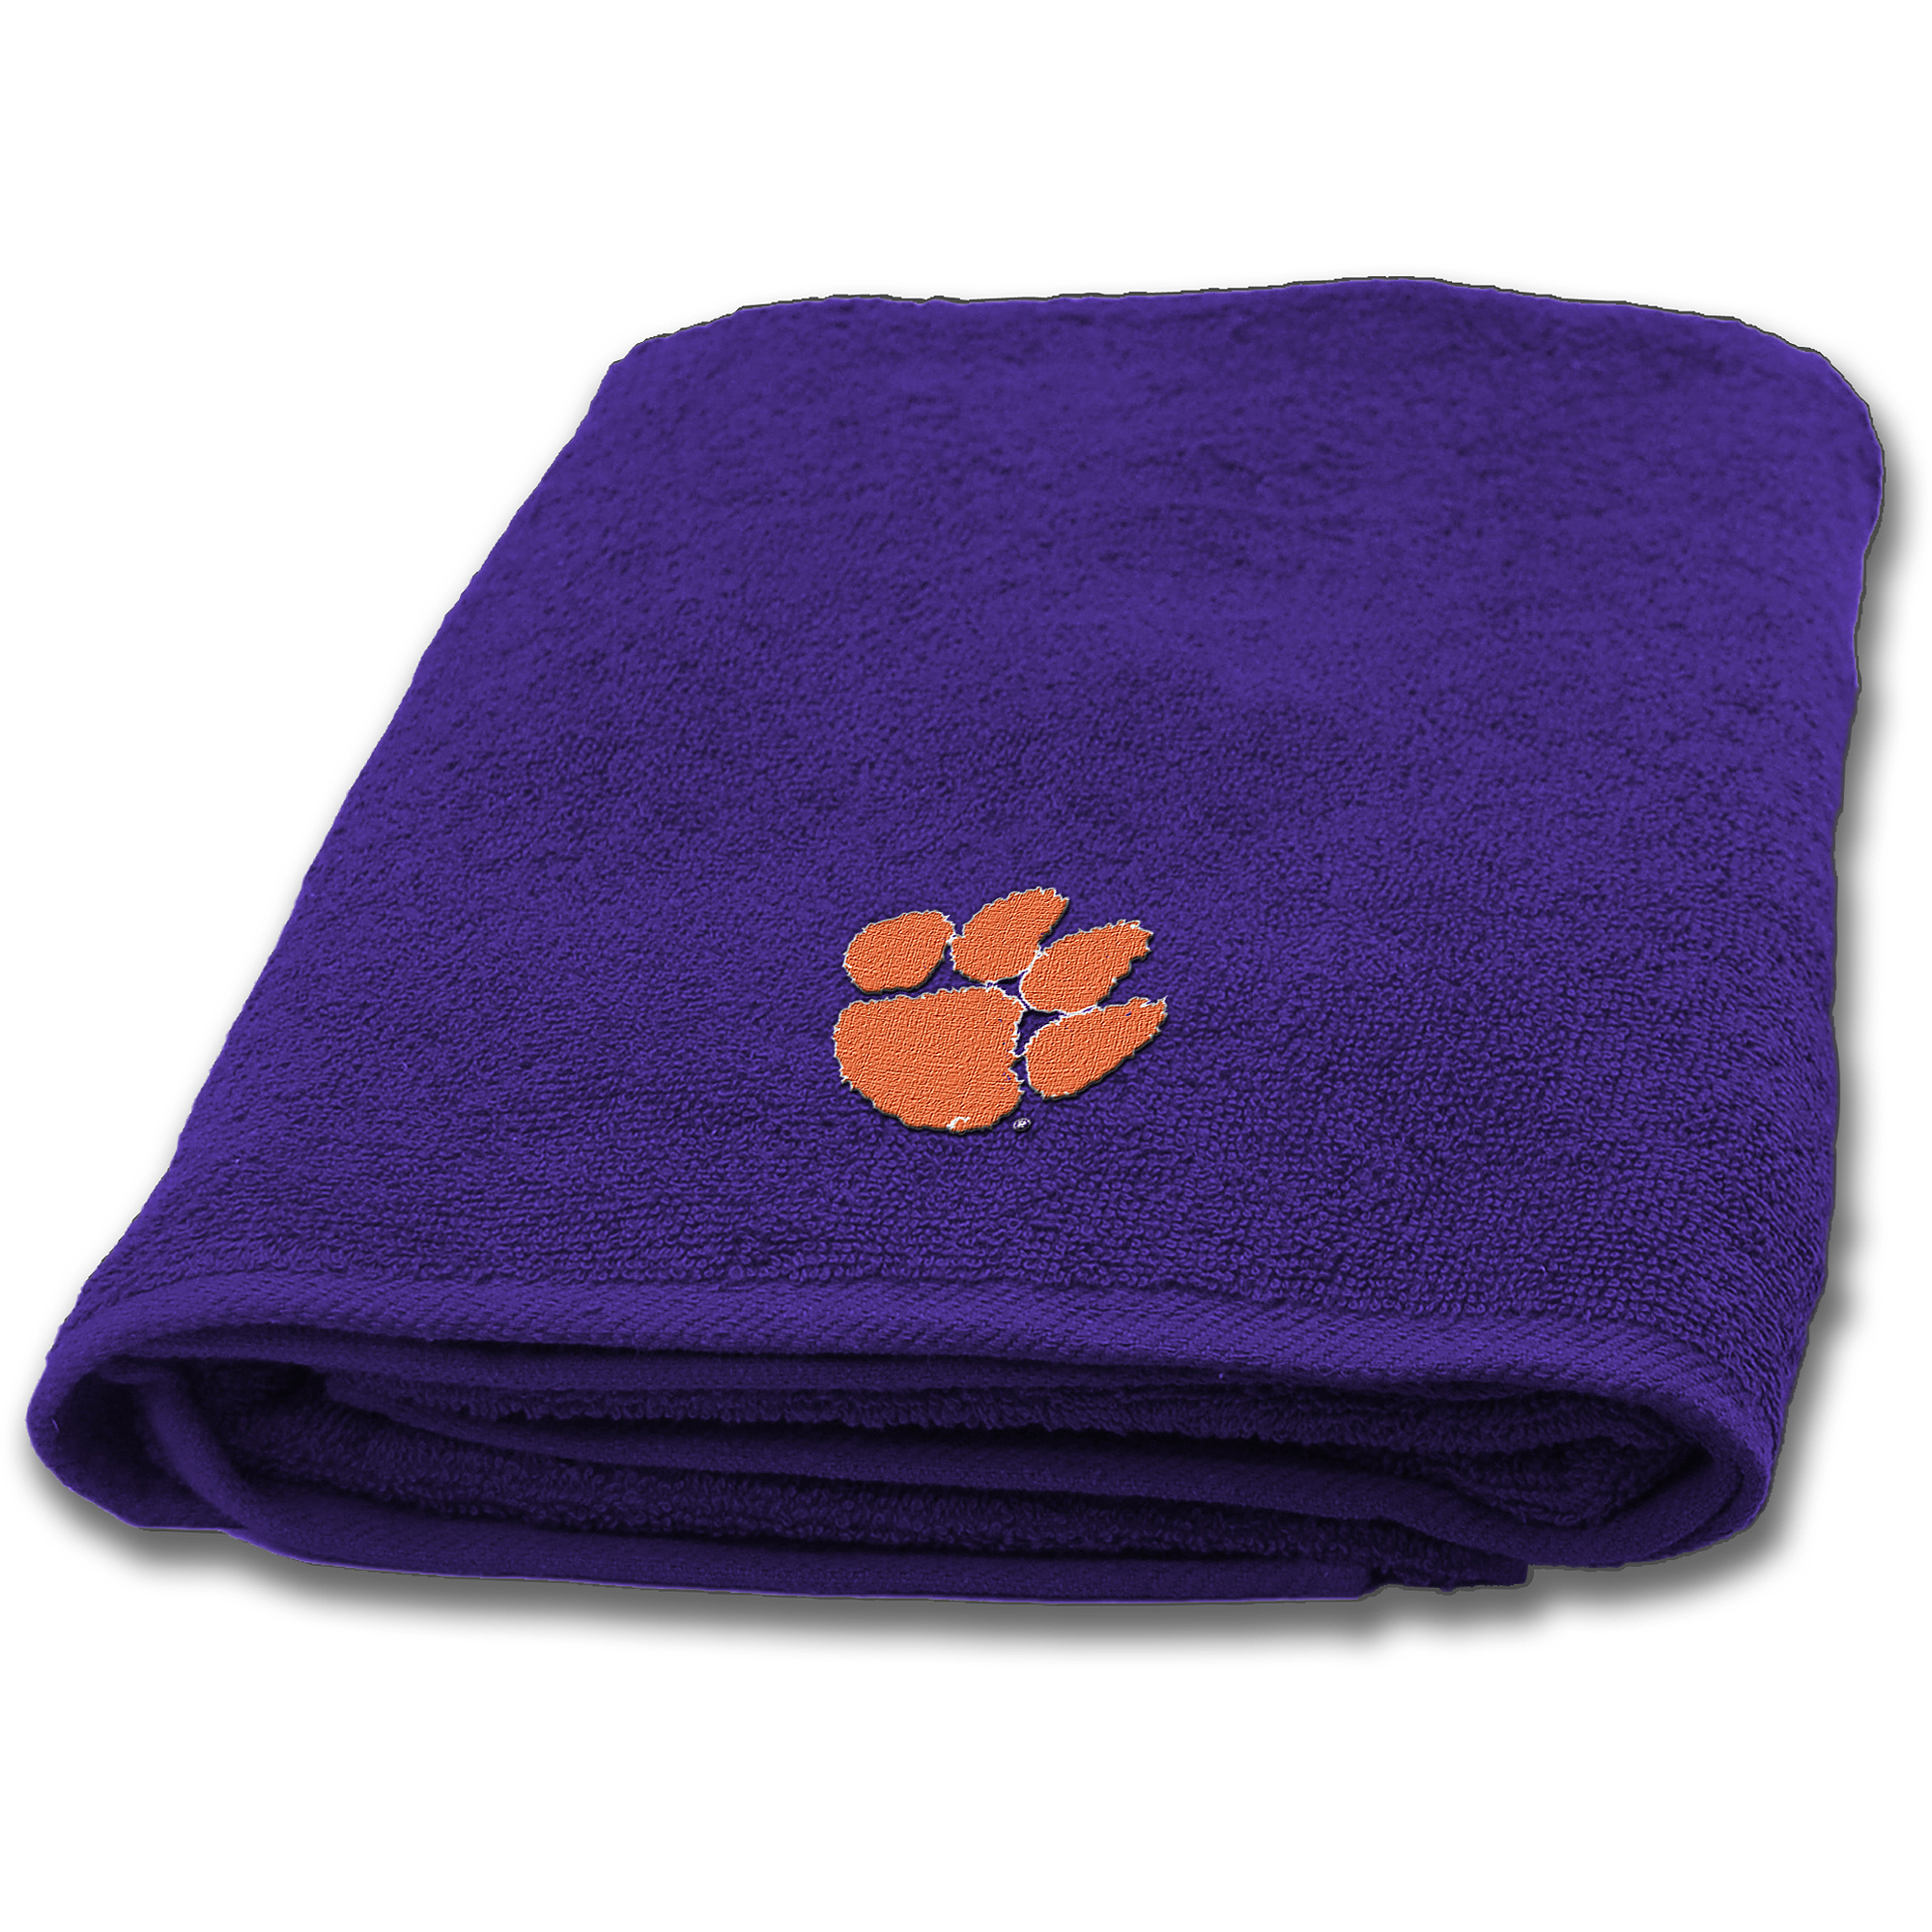 NCAA Clemson University Decorative Bath Collection Bath Towel